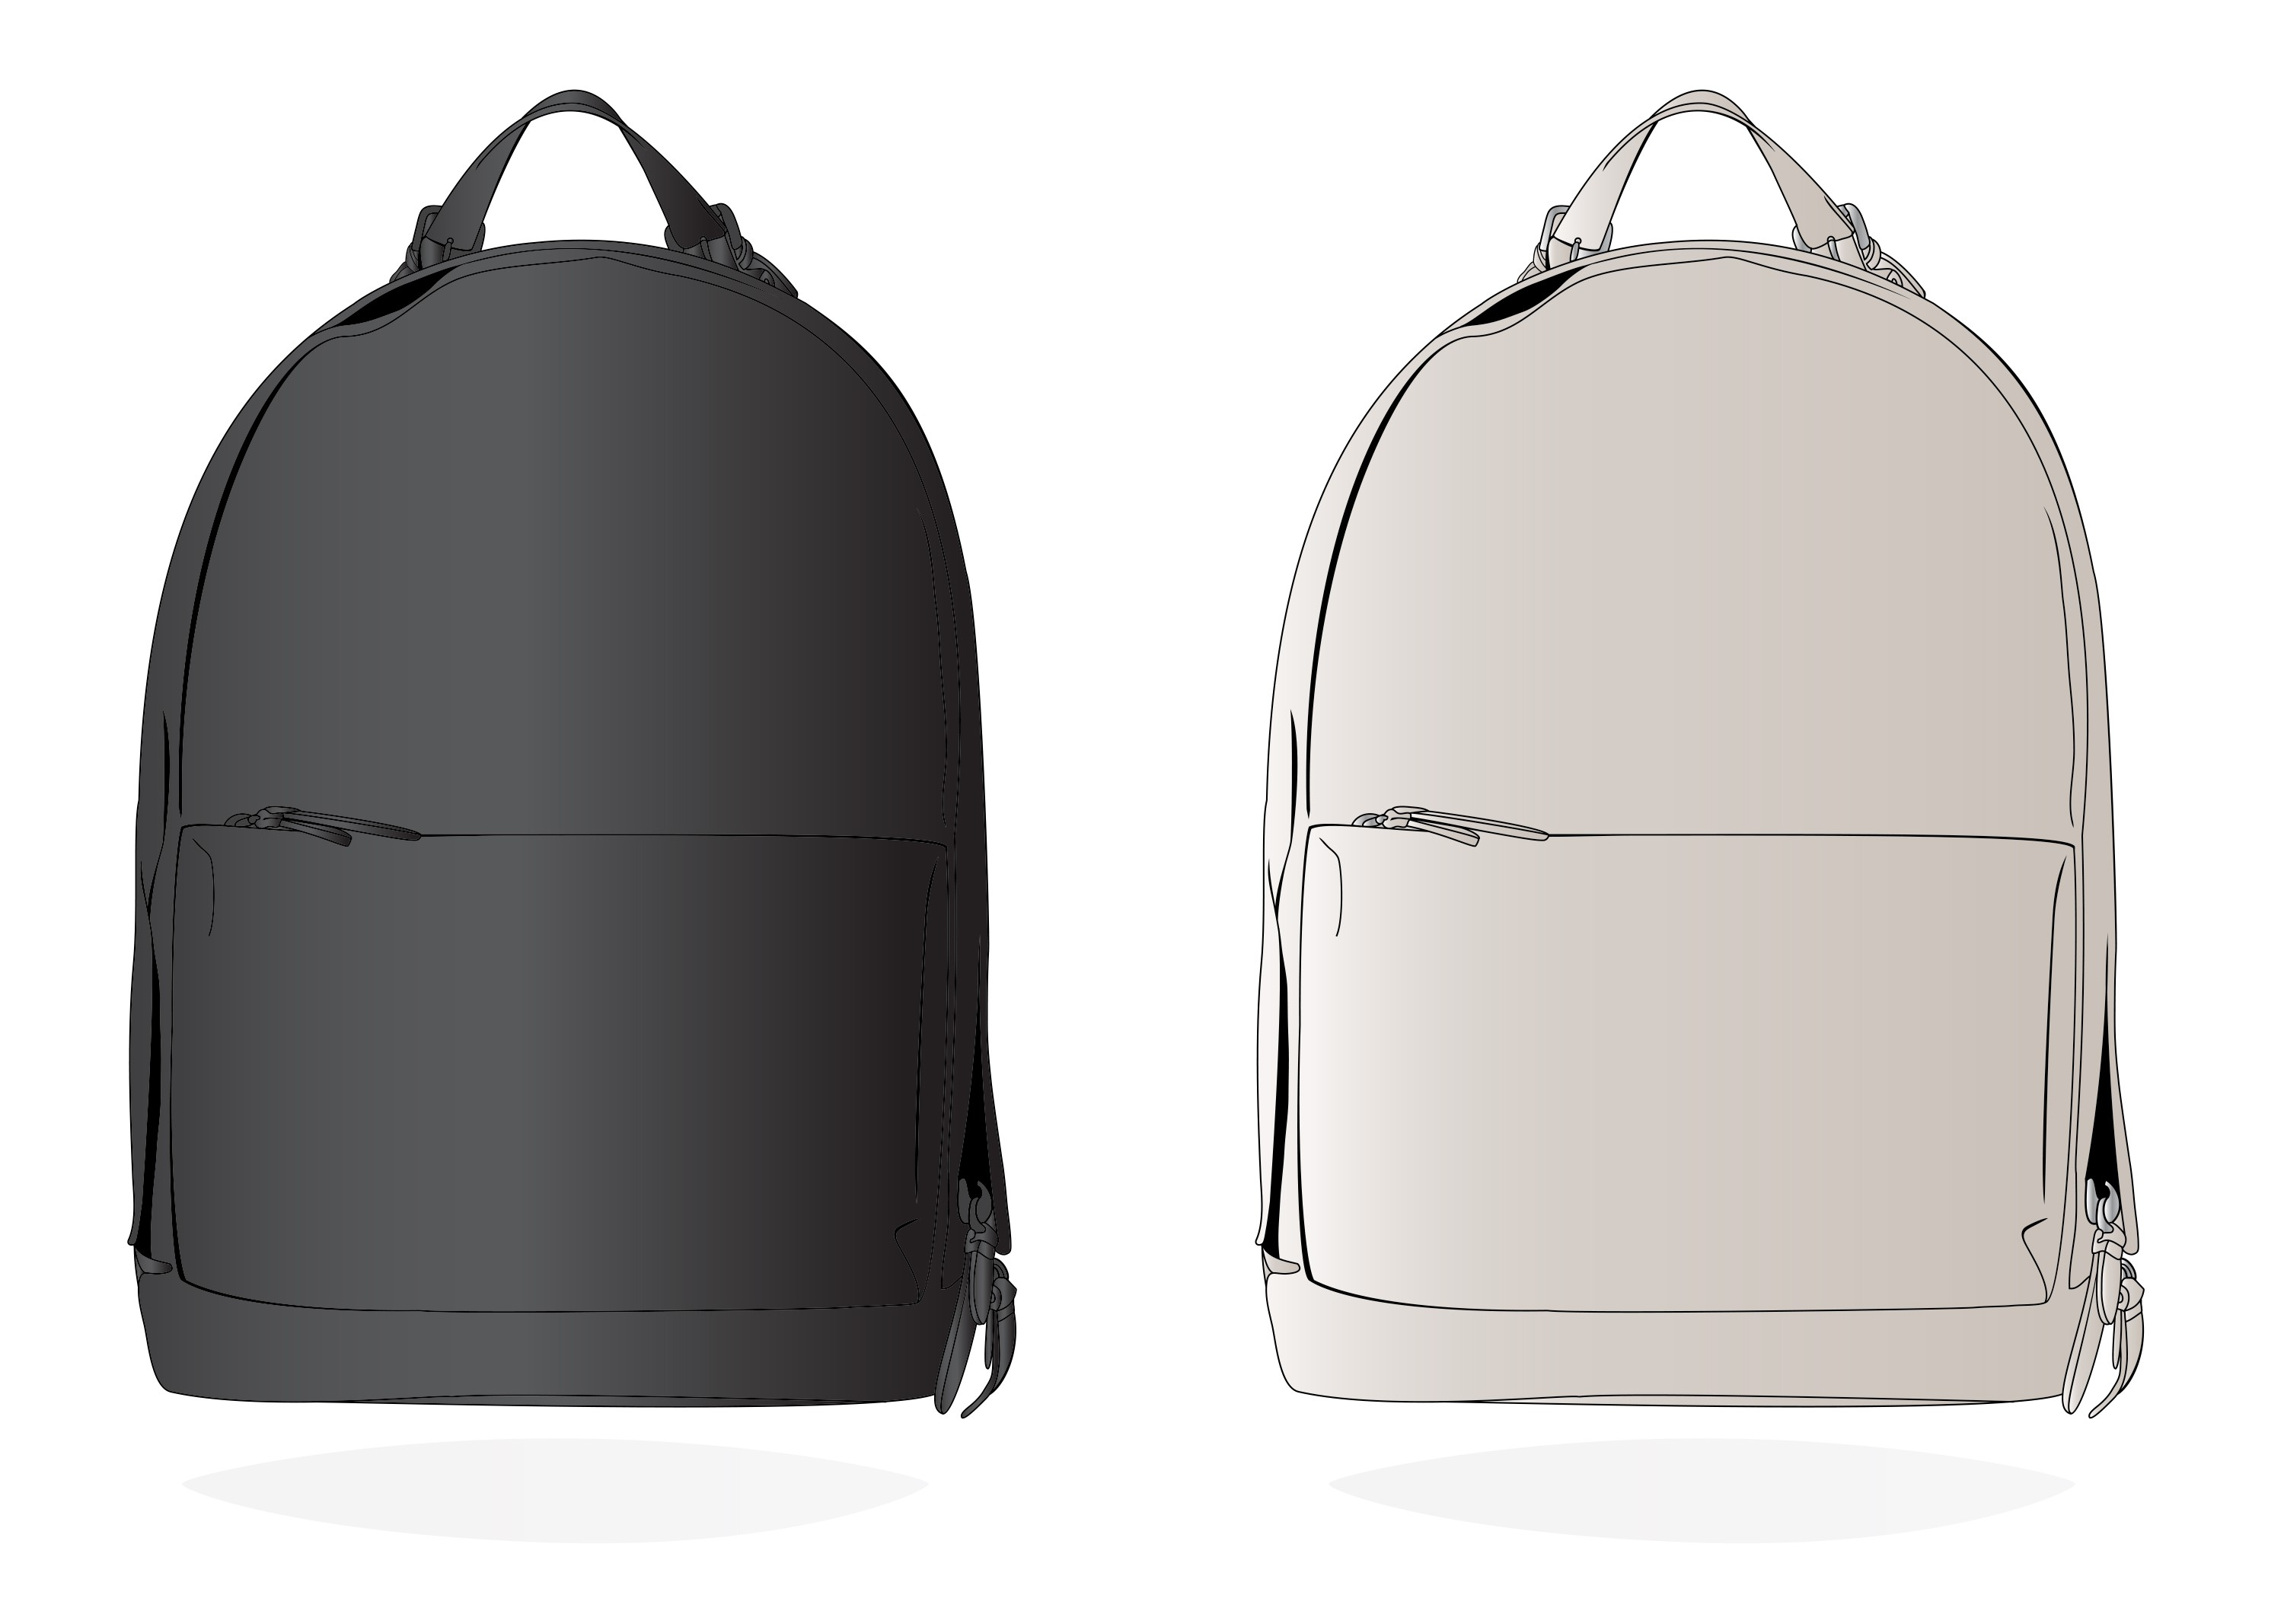 3.1 Phillip Lim Backpacks